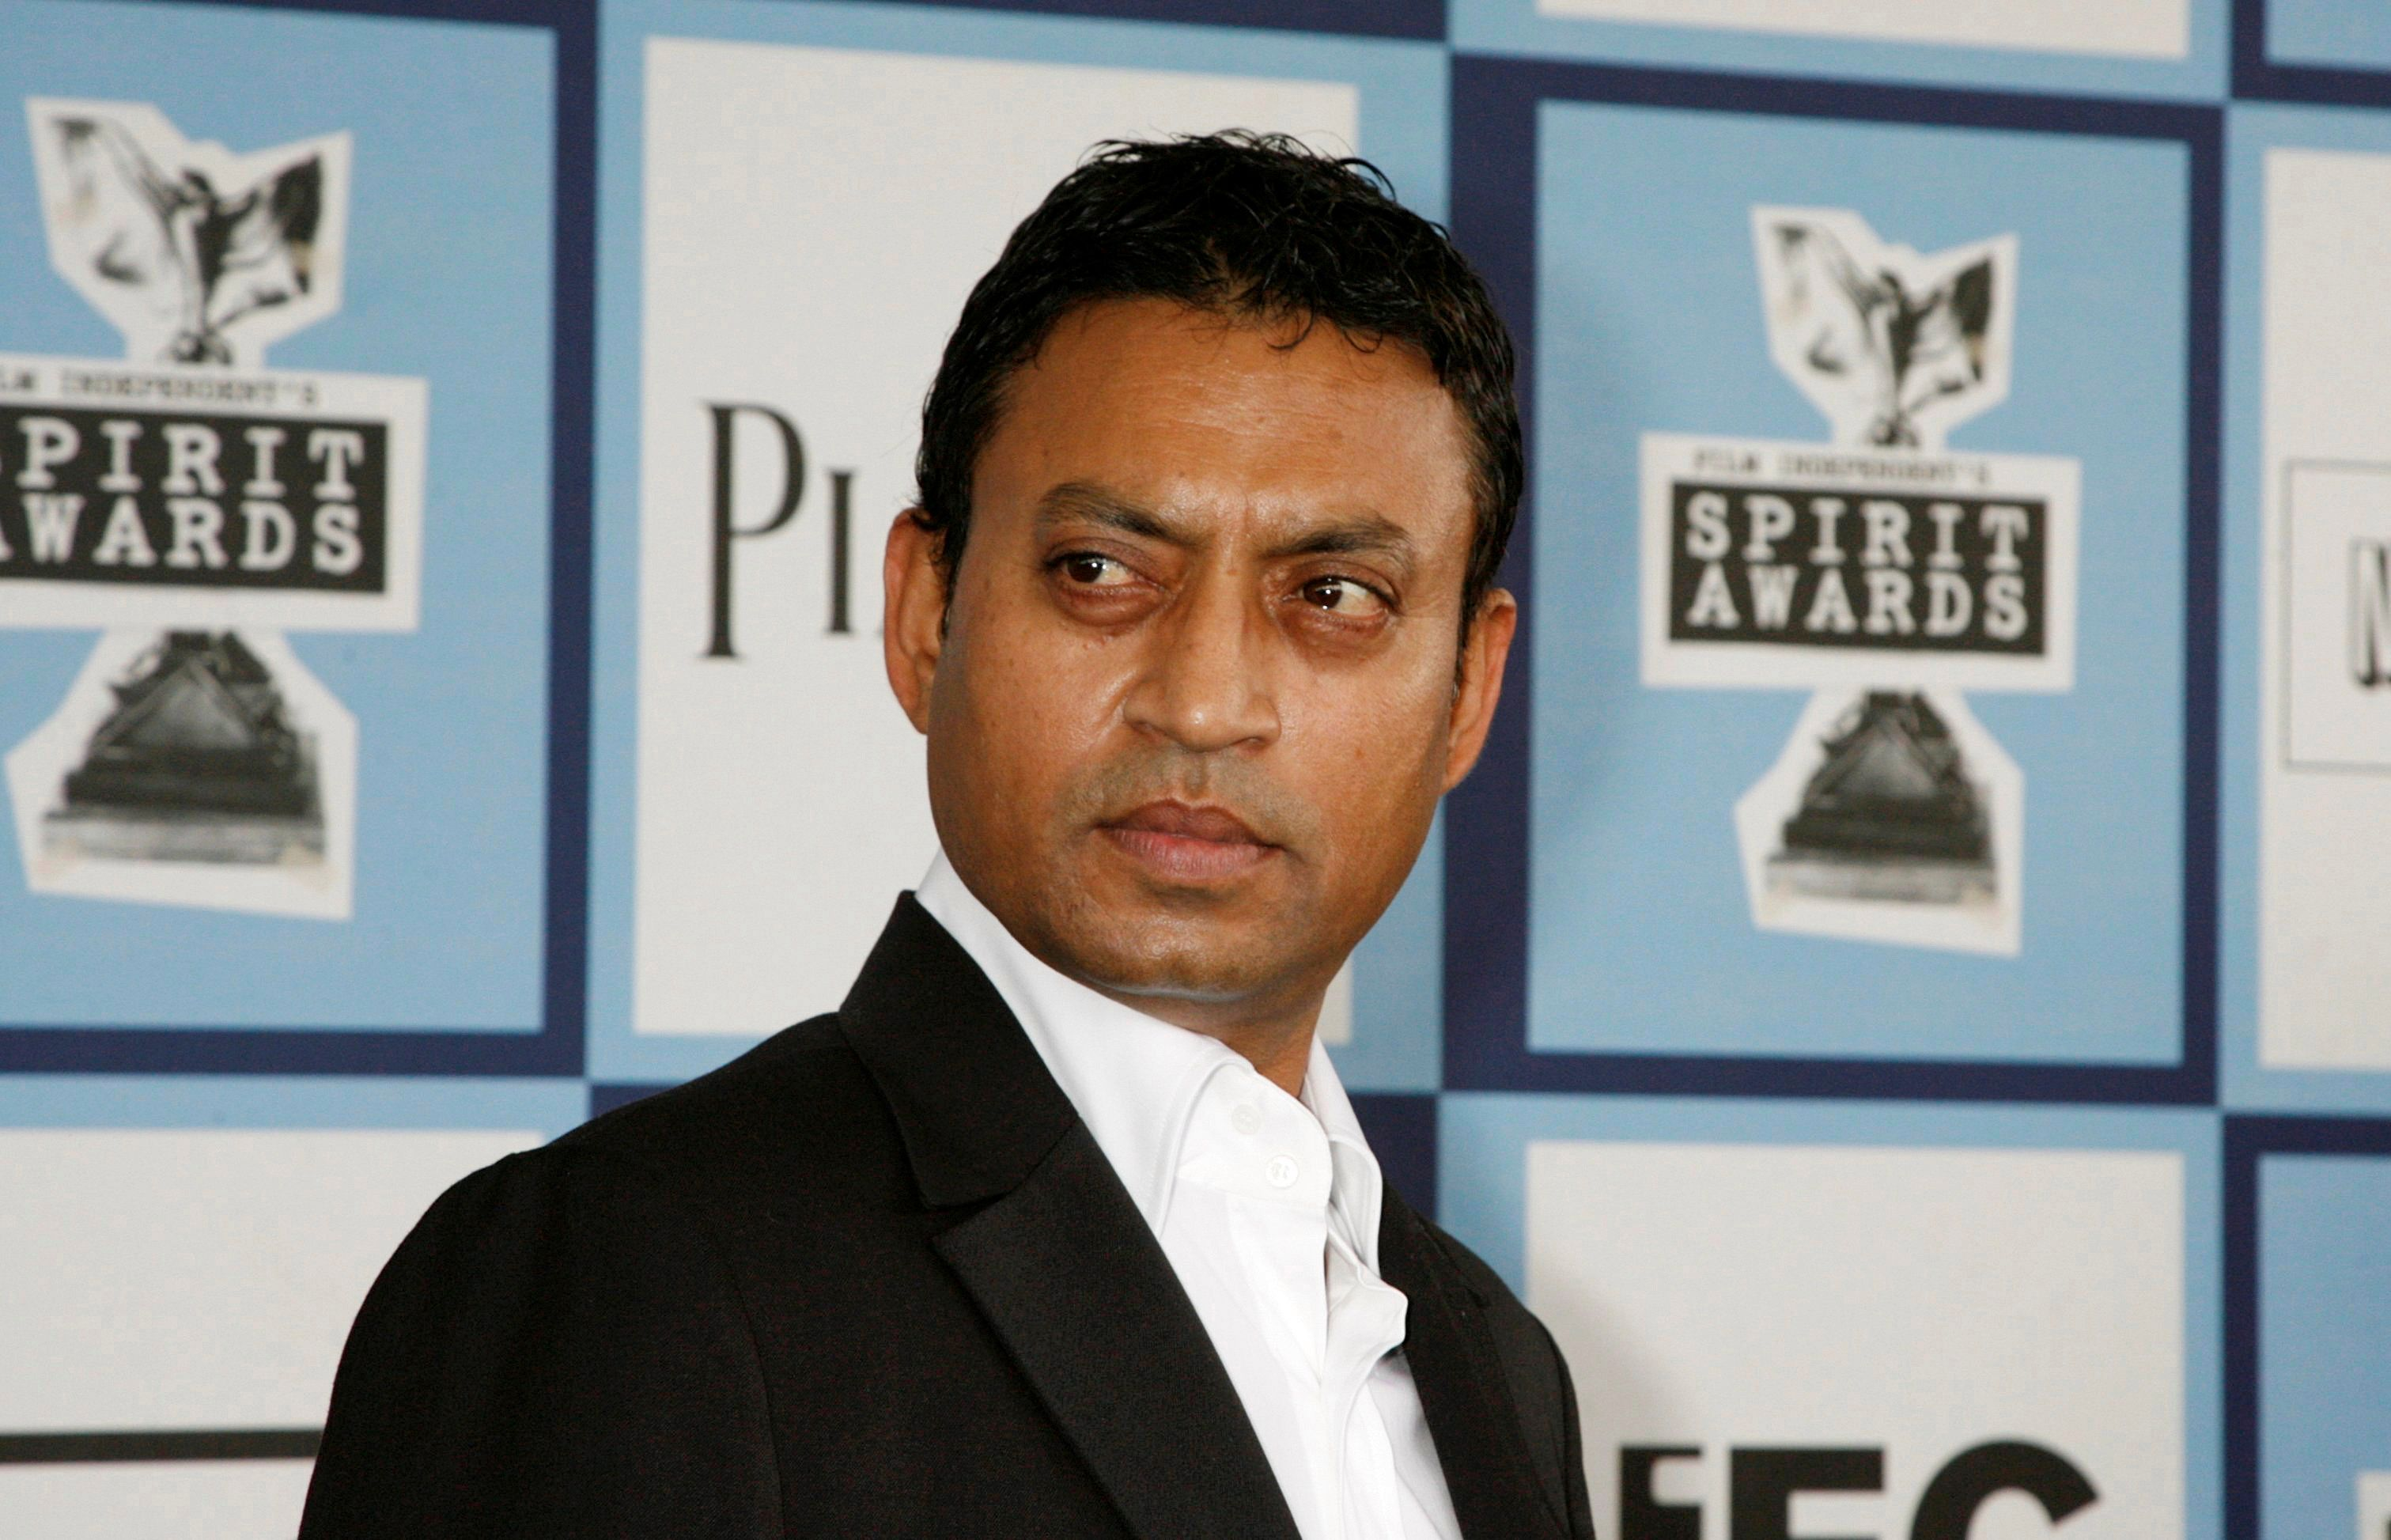 Irrfan Khan was a reluctant superstar, and a rare global success for India